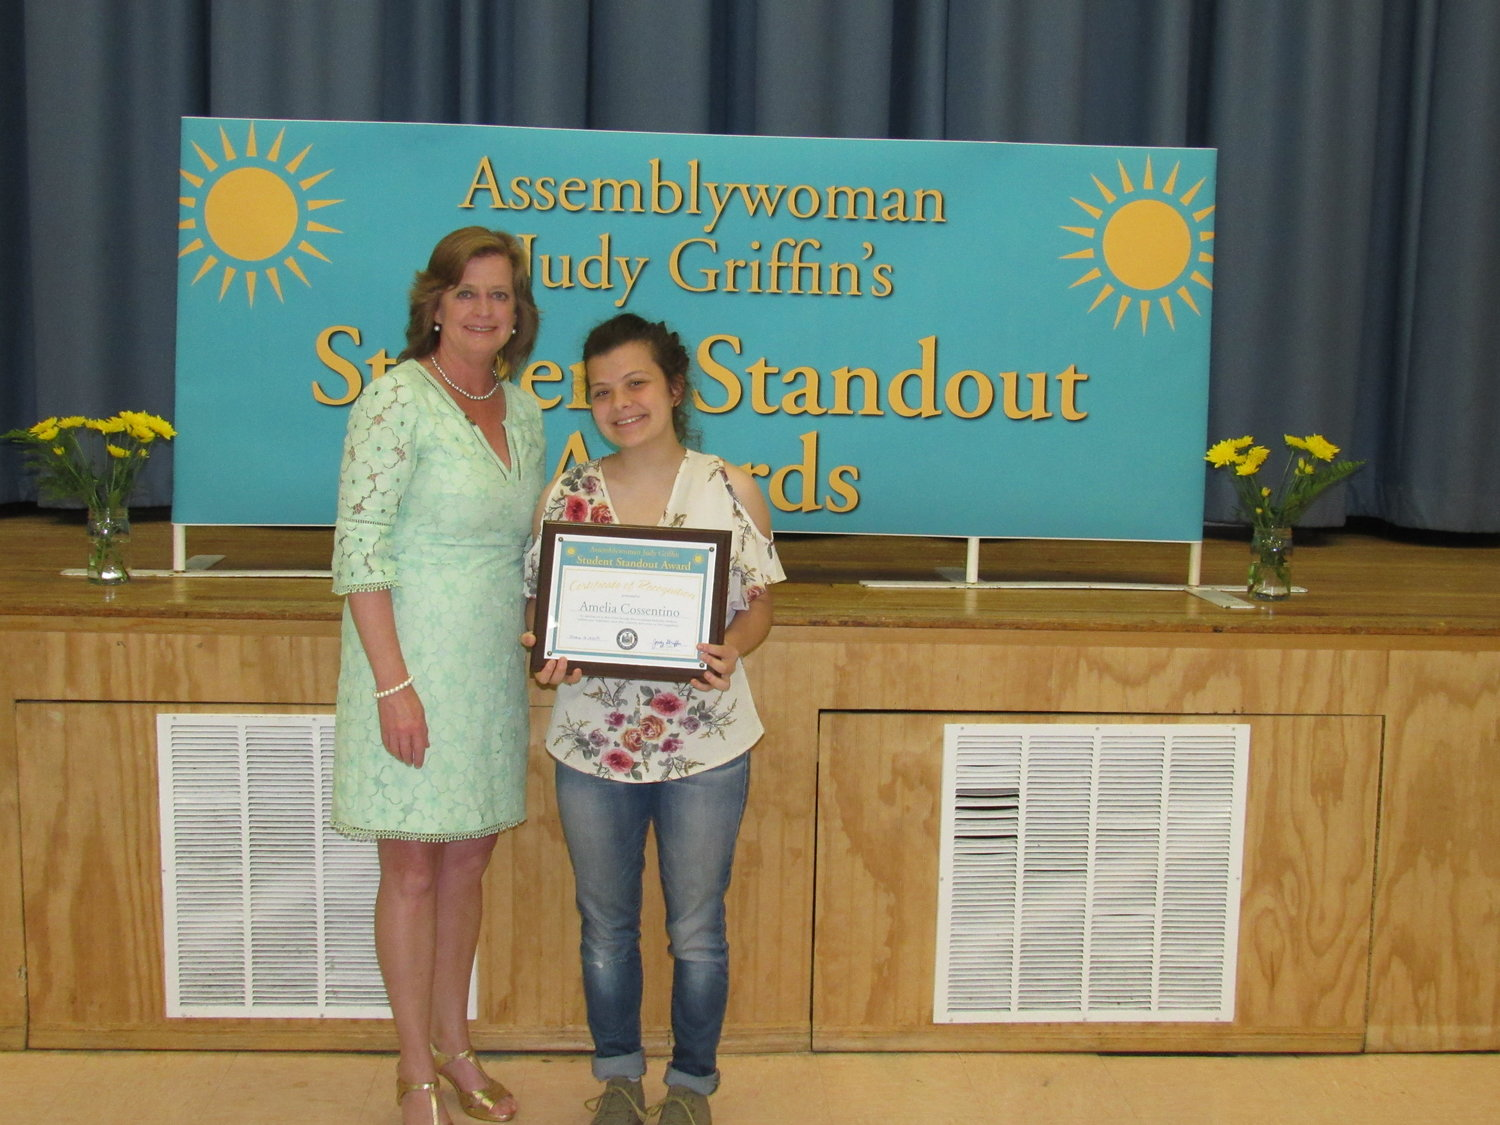 Valley Stream North High School student Amelia Cossentino, of Malverne, was also awarded.